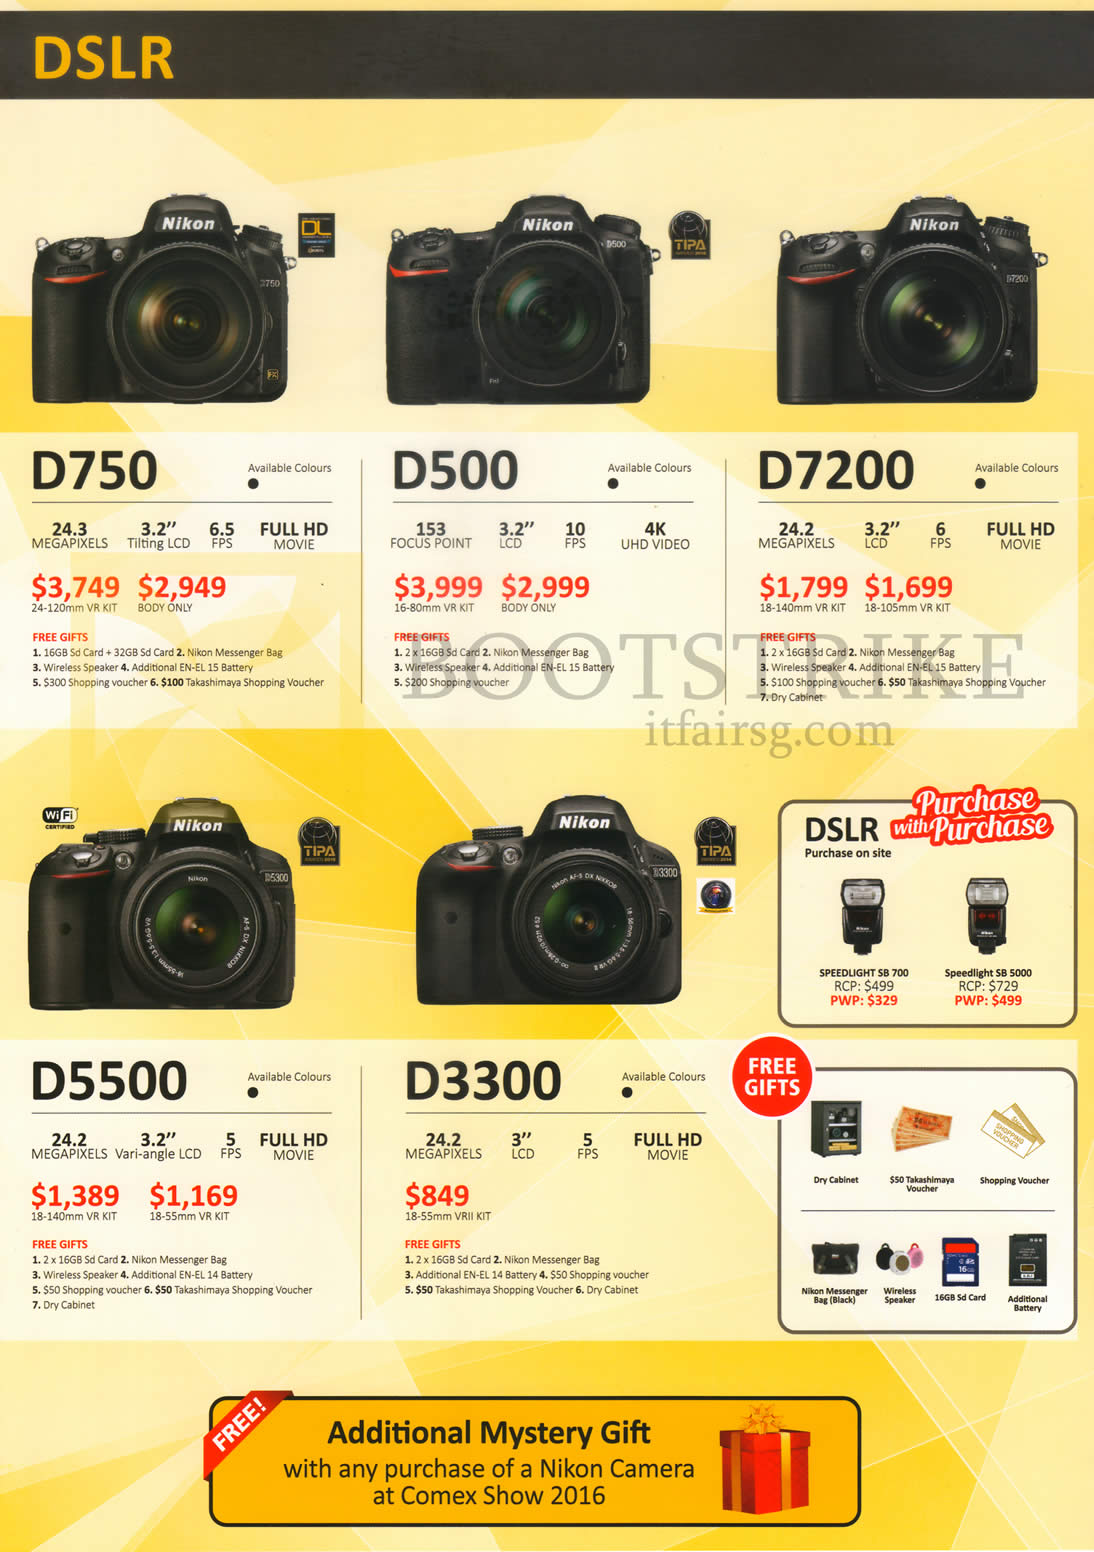 COMEX 2016 price list image brochure of Nikon DSLR Digital Cameras D750, D500, D7200, D5500, D3300